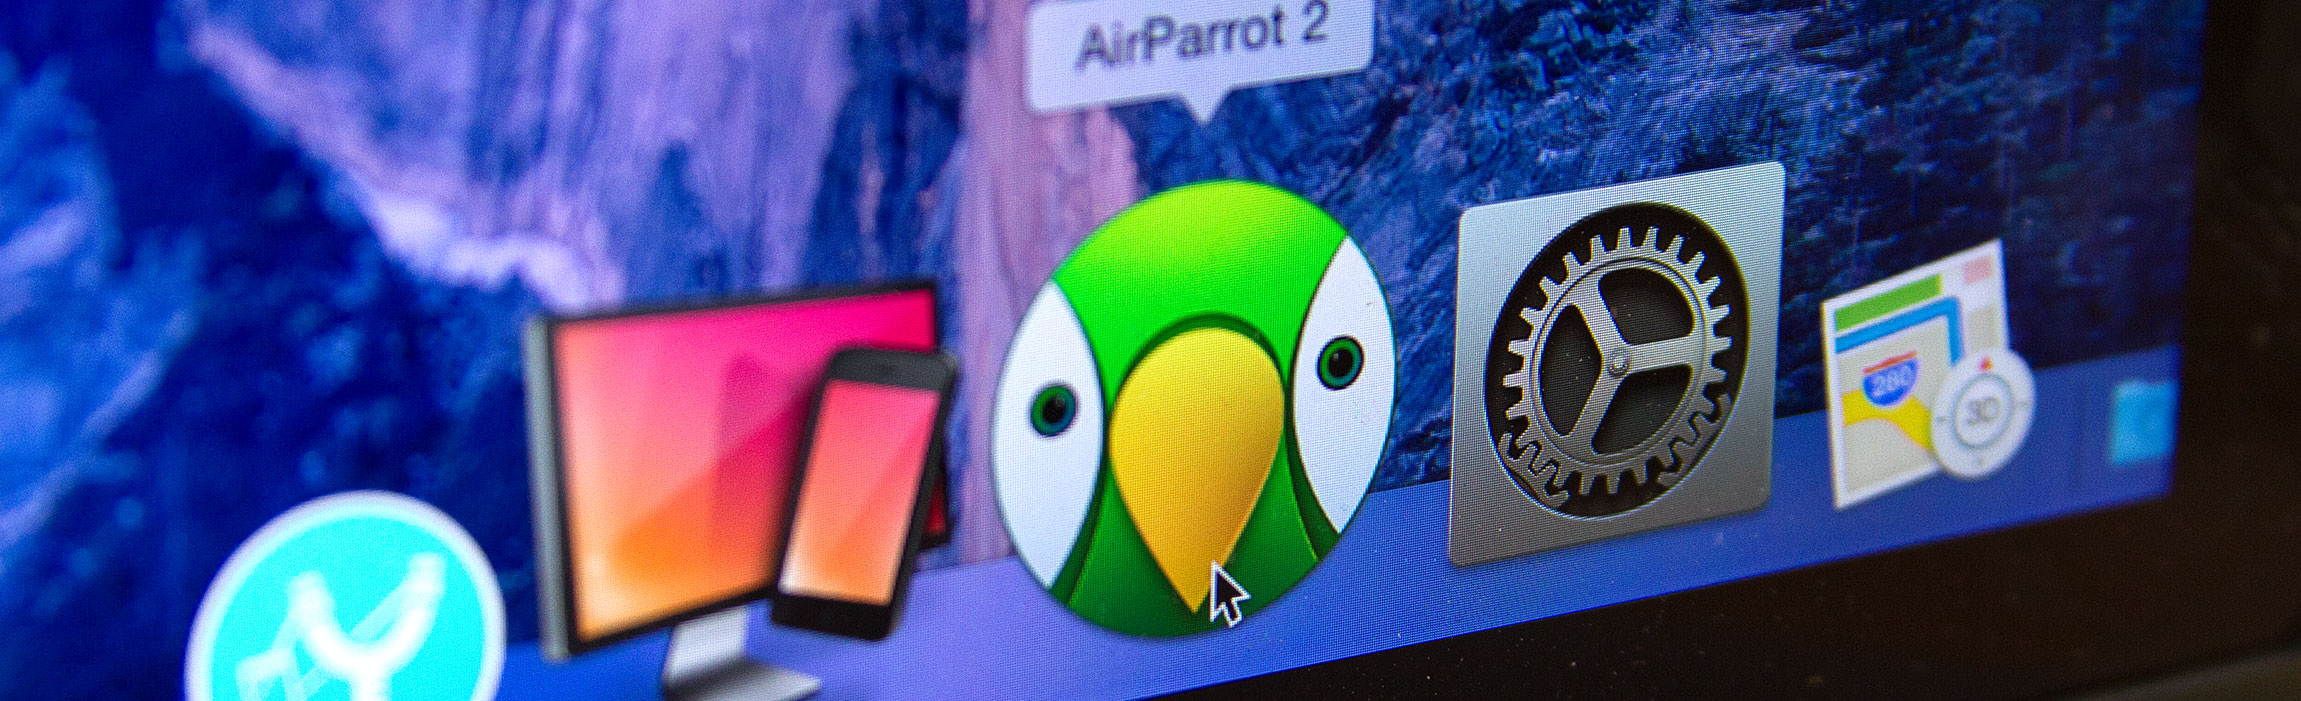 Getting Started with AirParrot 2 for Mac or Windows